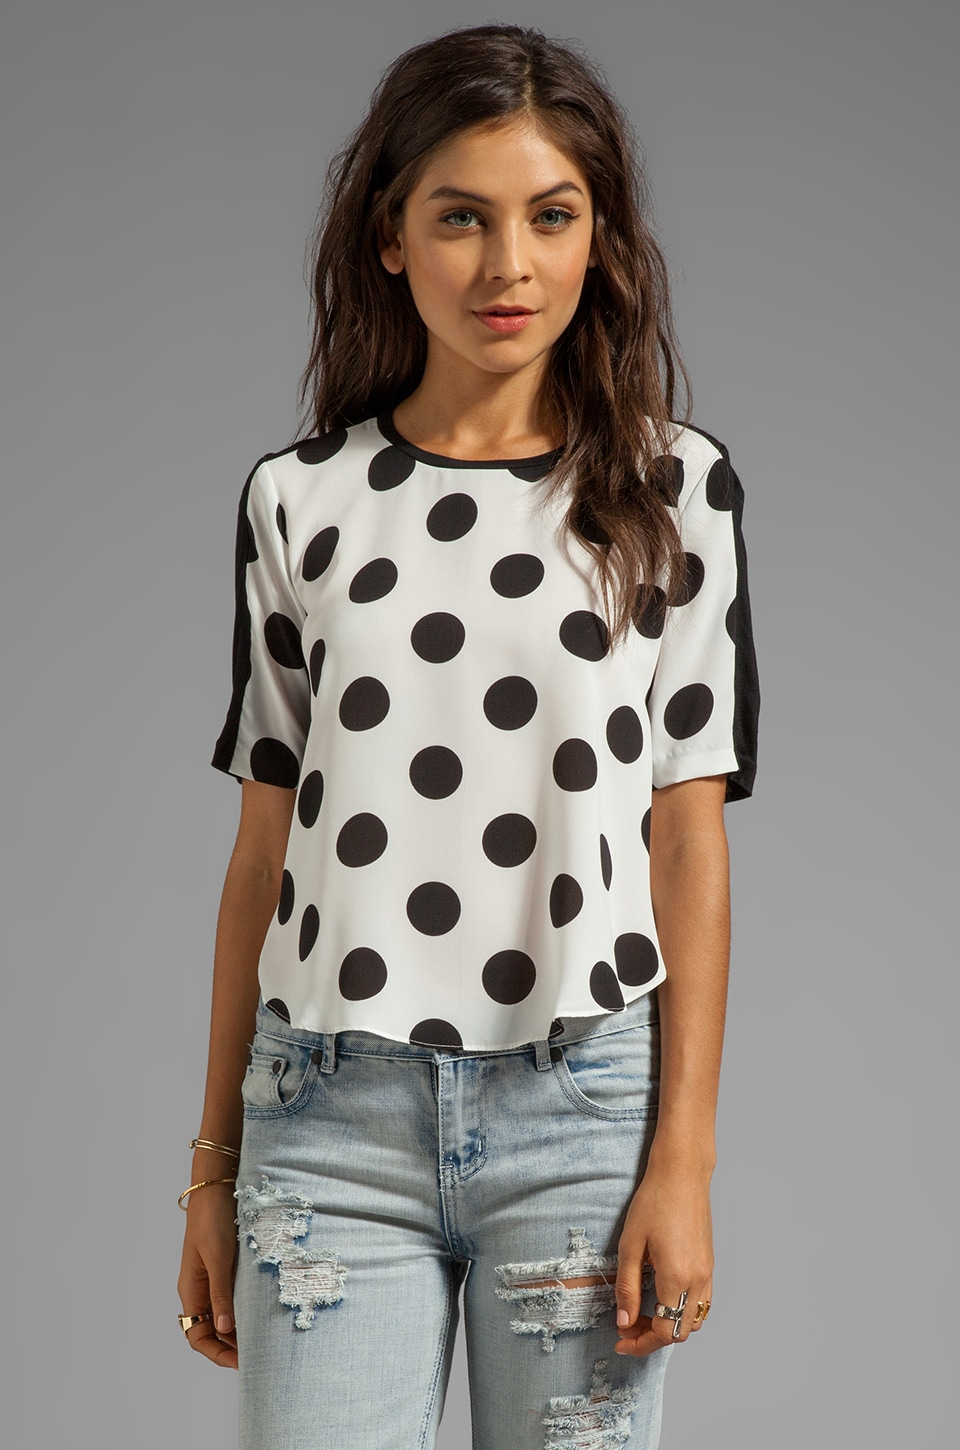 Dolce Vita Anex Rayon Dot Top in White/Black